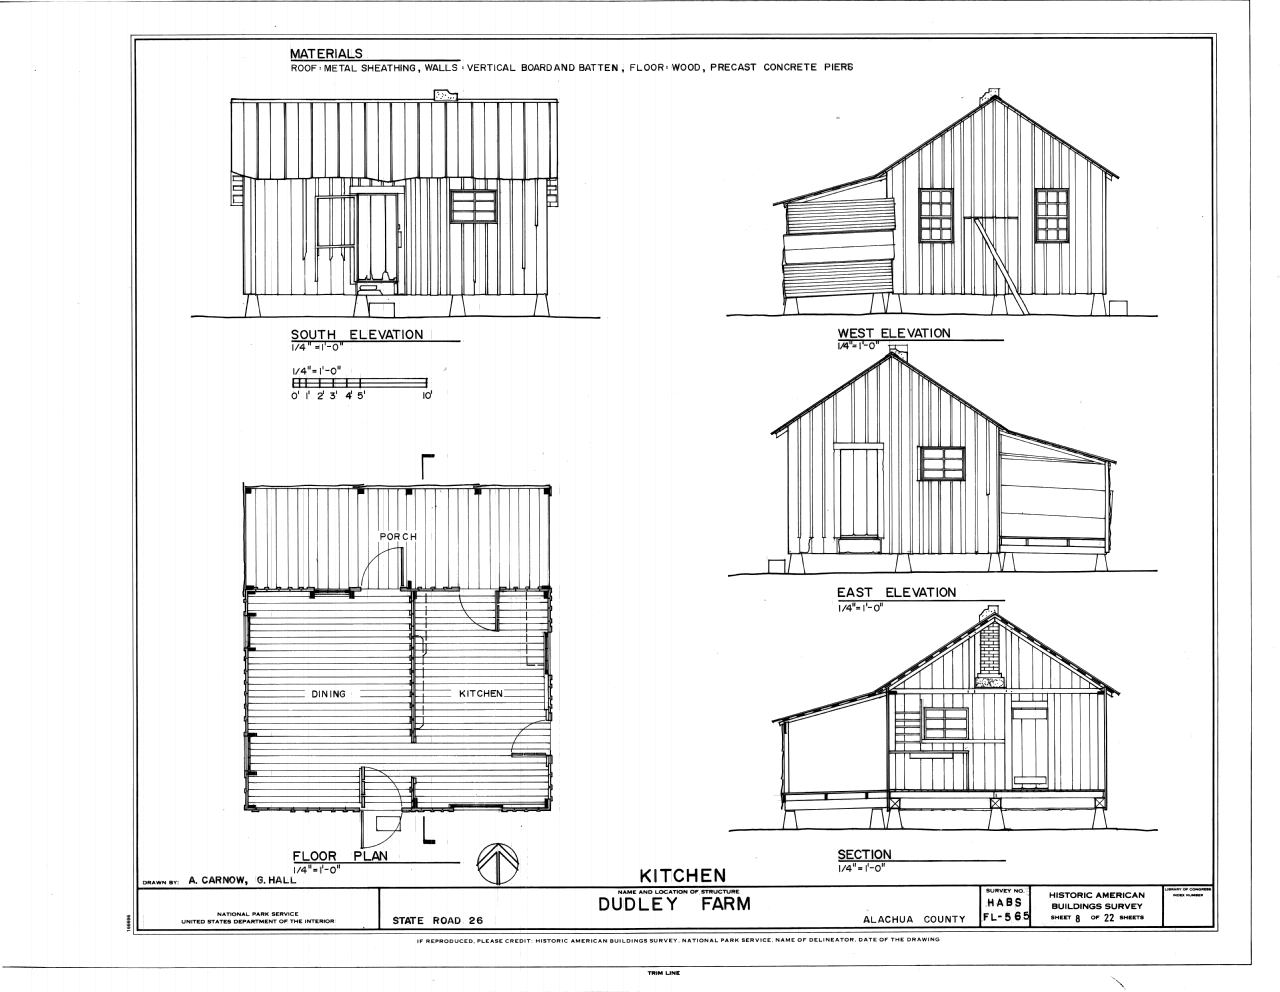 Building Elevation With Plan : File kitchen elevations floor plan and section dudley